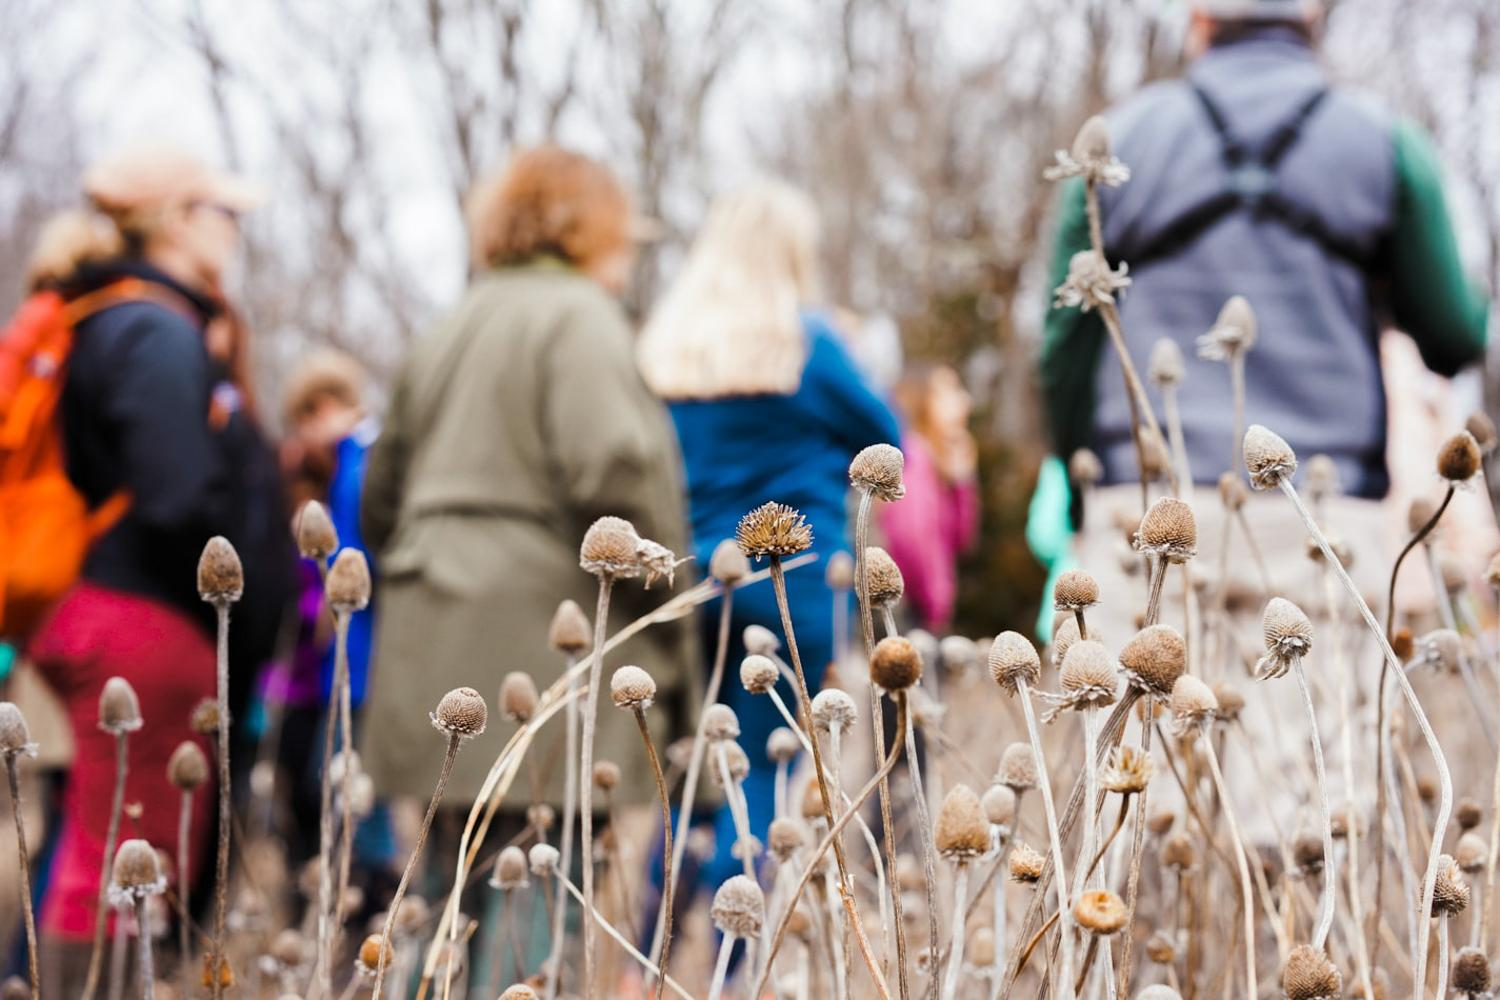 Teachers and members of the VAEE listen attentively as Mike Hayslett teaches them about vernal pools and the importance of wetlands. At Sweet Briar College, 2020.